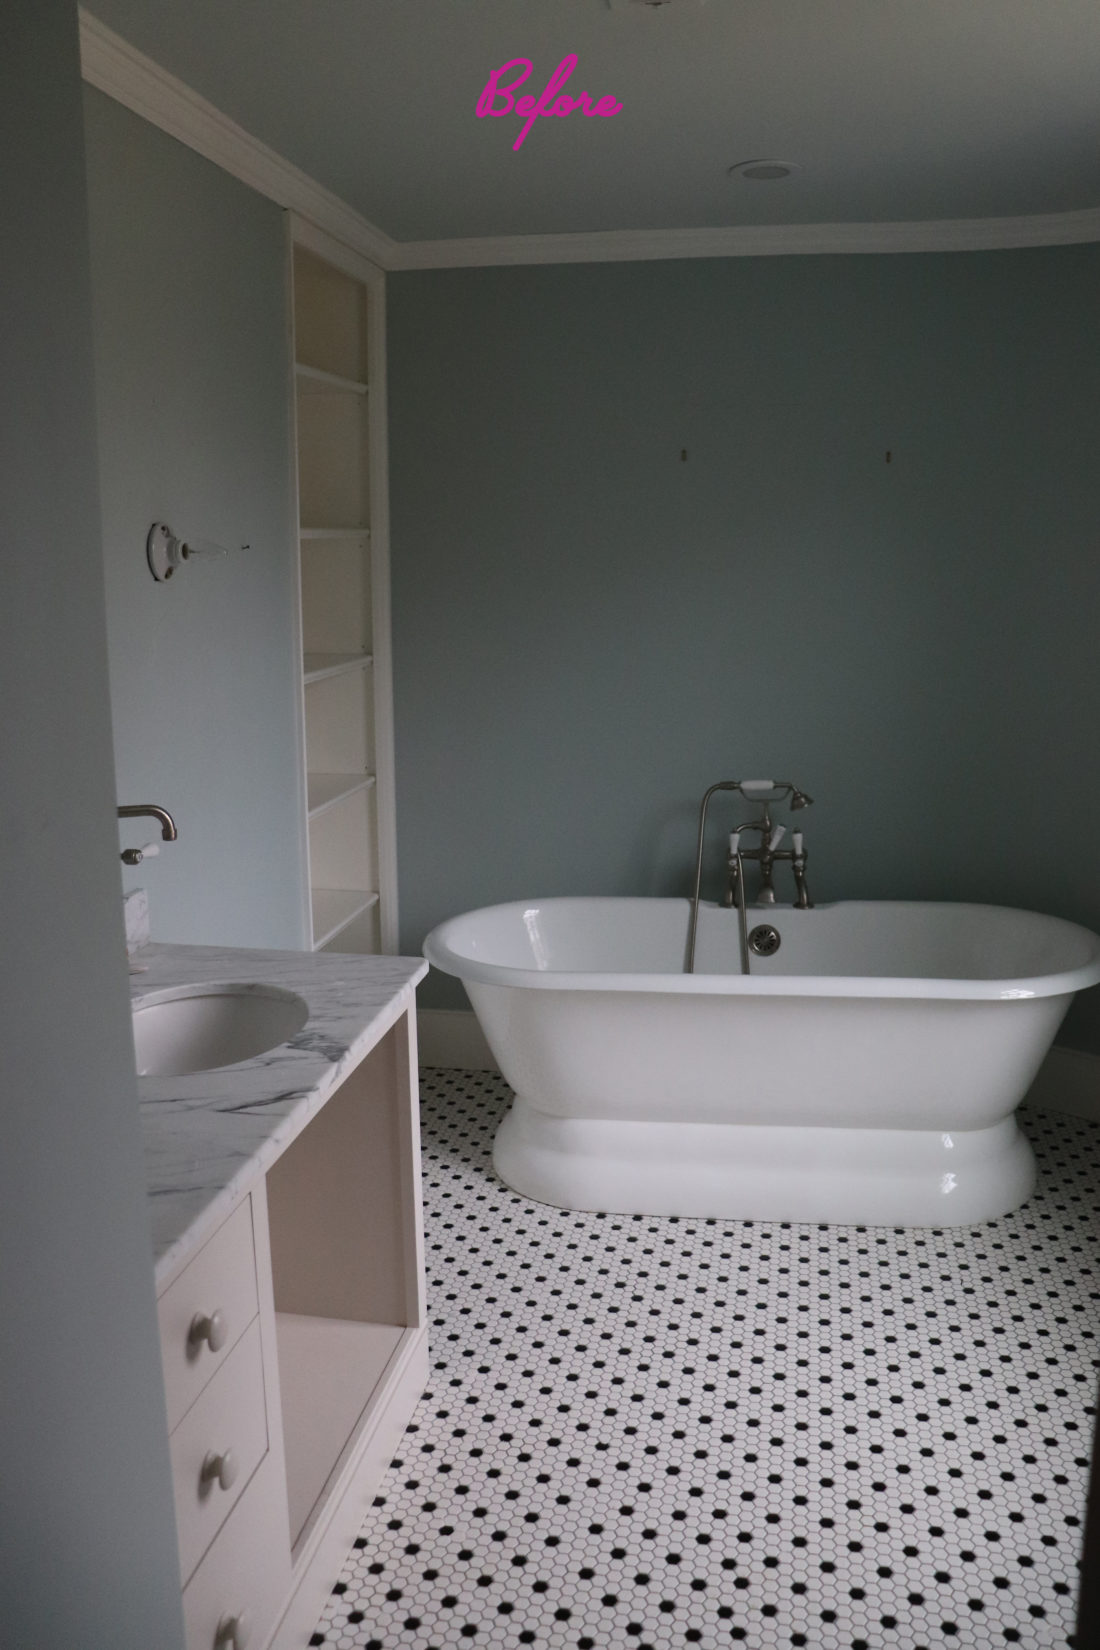 Eva Amurri Martino's bathroom before renovation and decorating